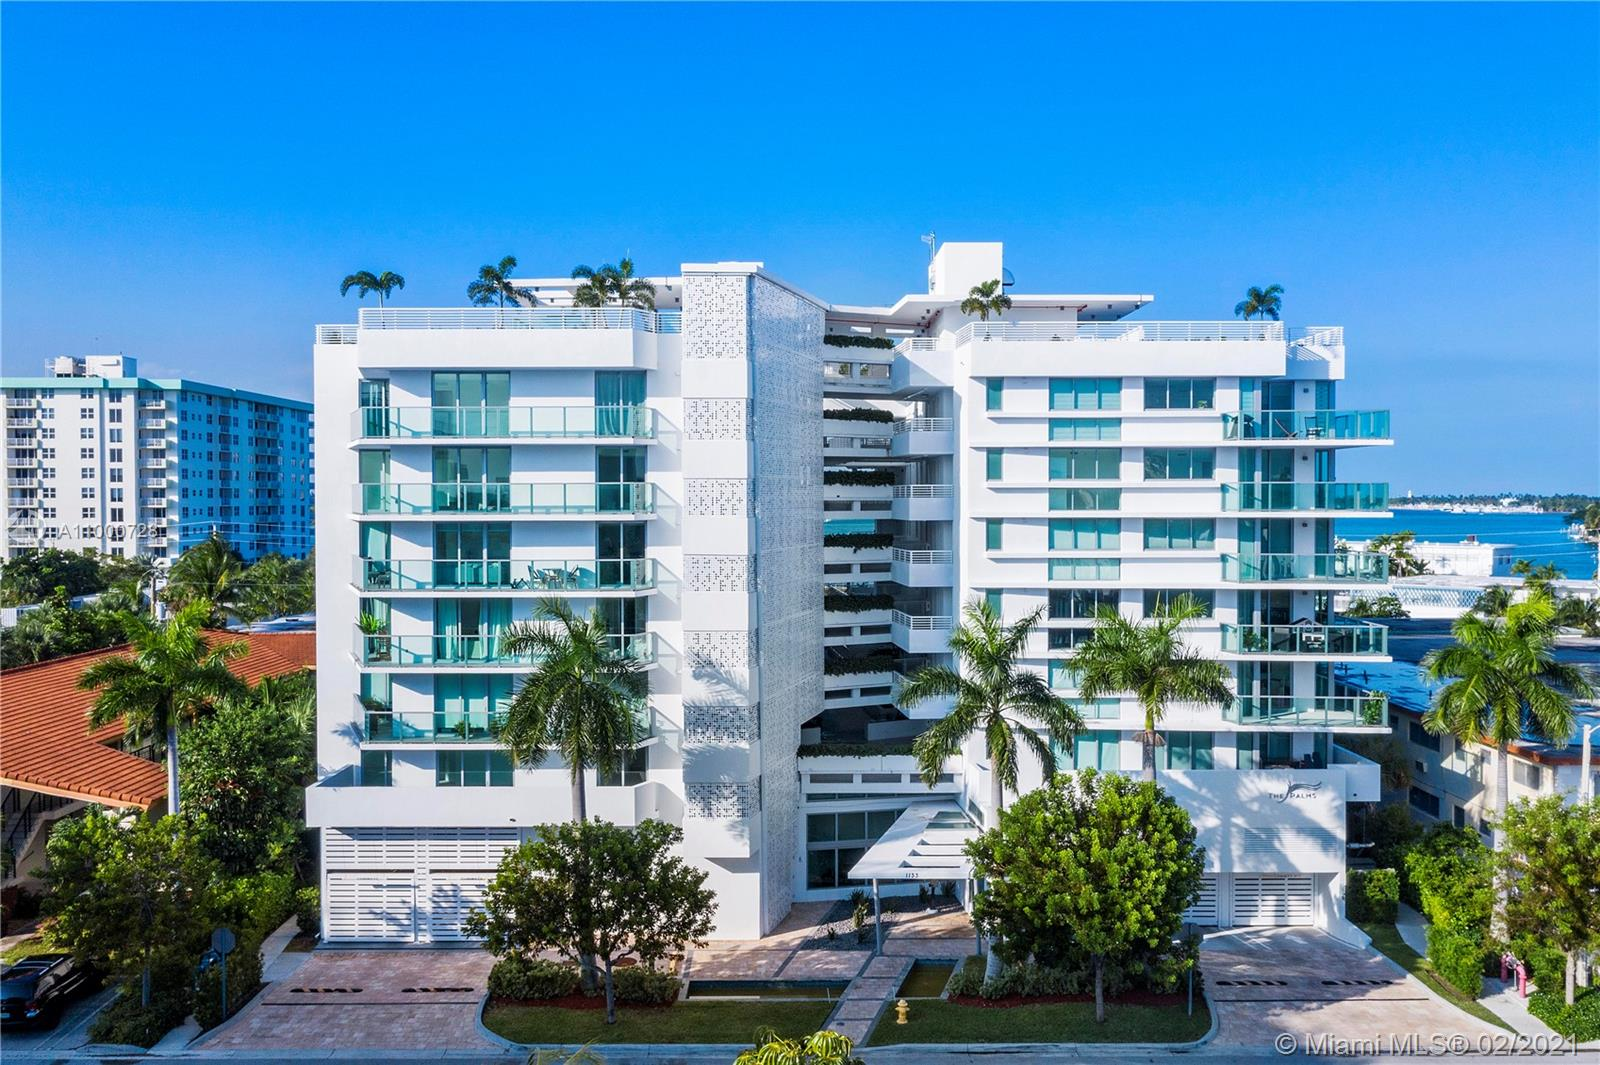 Boutique style building in Bay Harbor Islands completed in 2018. Unit has 1 bedroom and 2 bathrooms. Offers stainless steel appliances, tile throughout, washer and dryer inside, impact windows and wine cooler. Gorgeous views from the rooftop infinity pool and hot tub. Unit comes with 2 parking spaces as well as a storage unit. Walking distance to shopping, places of worship, and A+ Bay Harbor K-8 Education Center. Great for investment opportunity. Unit rented through January 5th 2022 at $2,550 per month with a 90 day vacancy clause. 24 Hour notice needed to show.